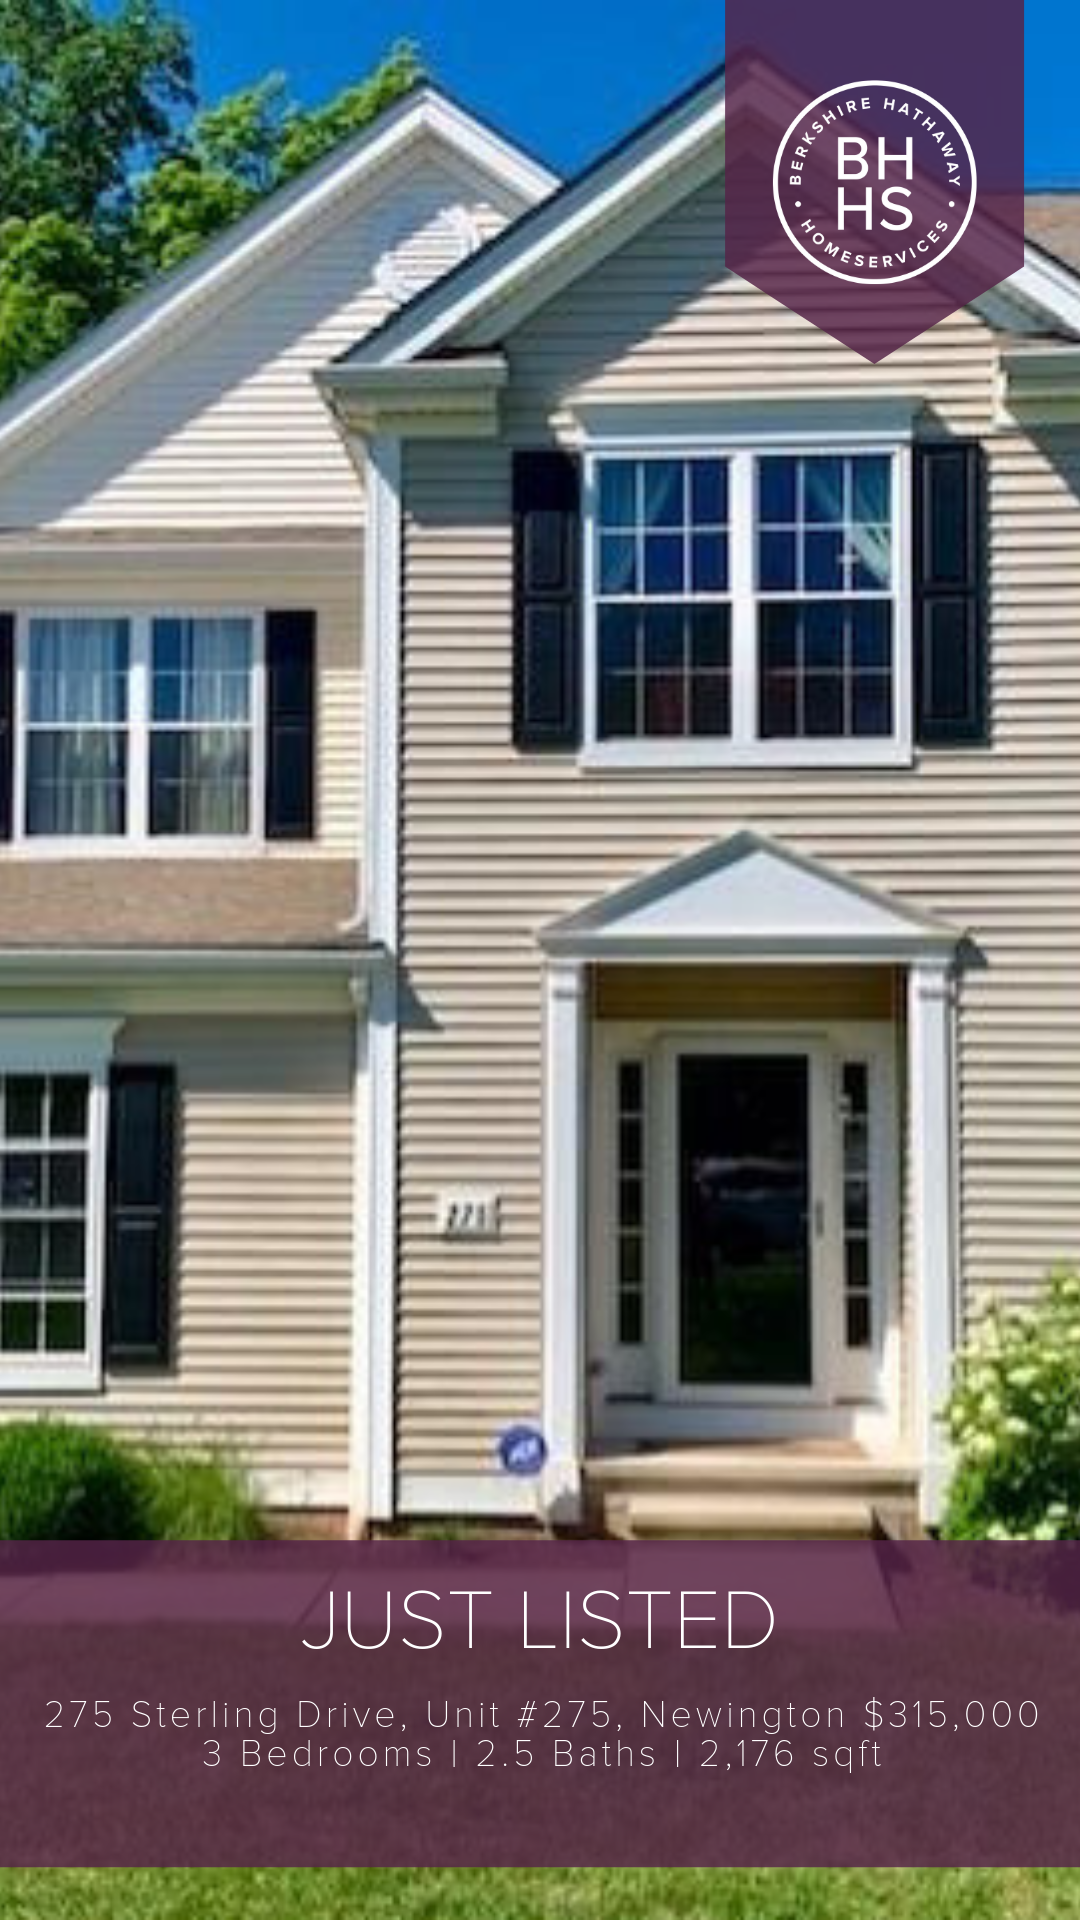 Check Out This Amazing Home In Newington Connecticut Newington Condominium Home Goods